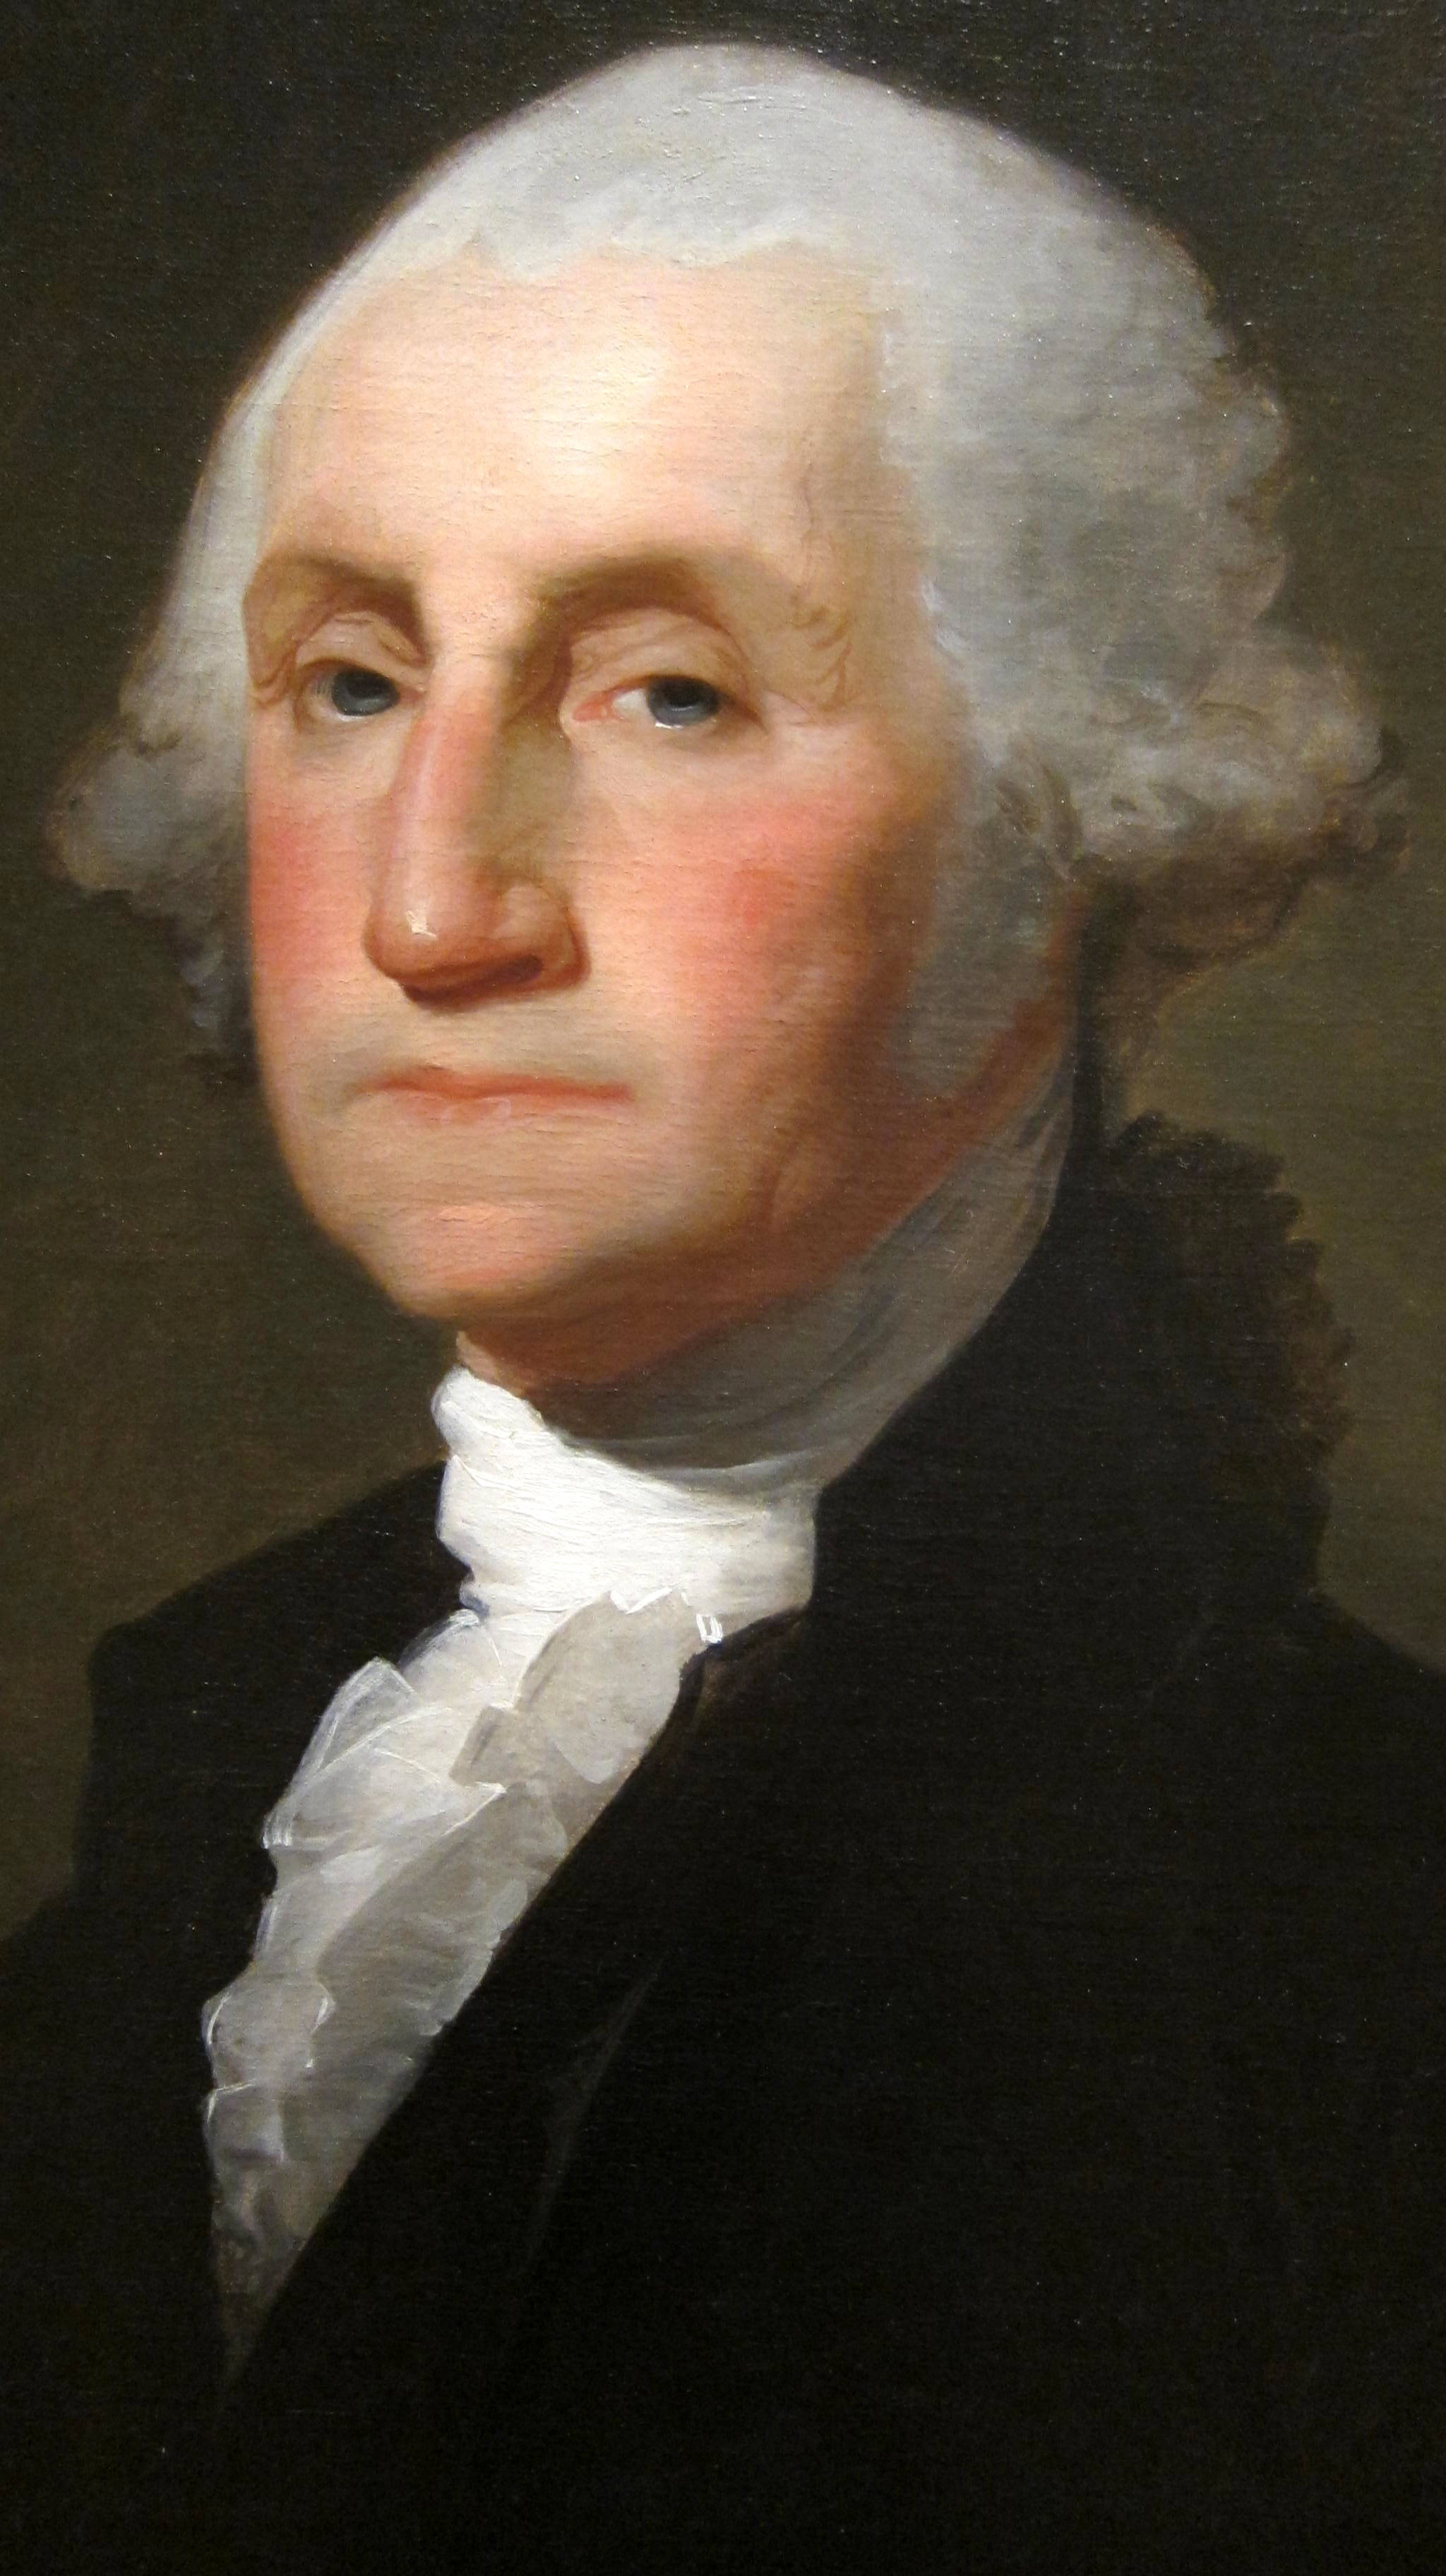 Personality ... MBTI Enneagram George Washington ... loading picture